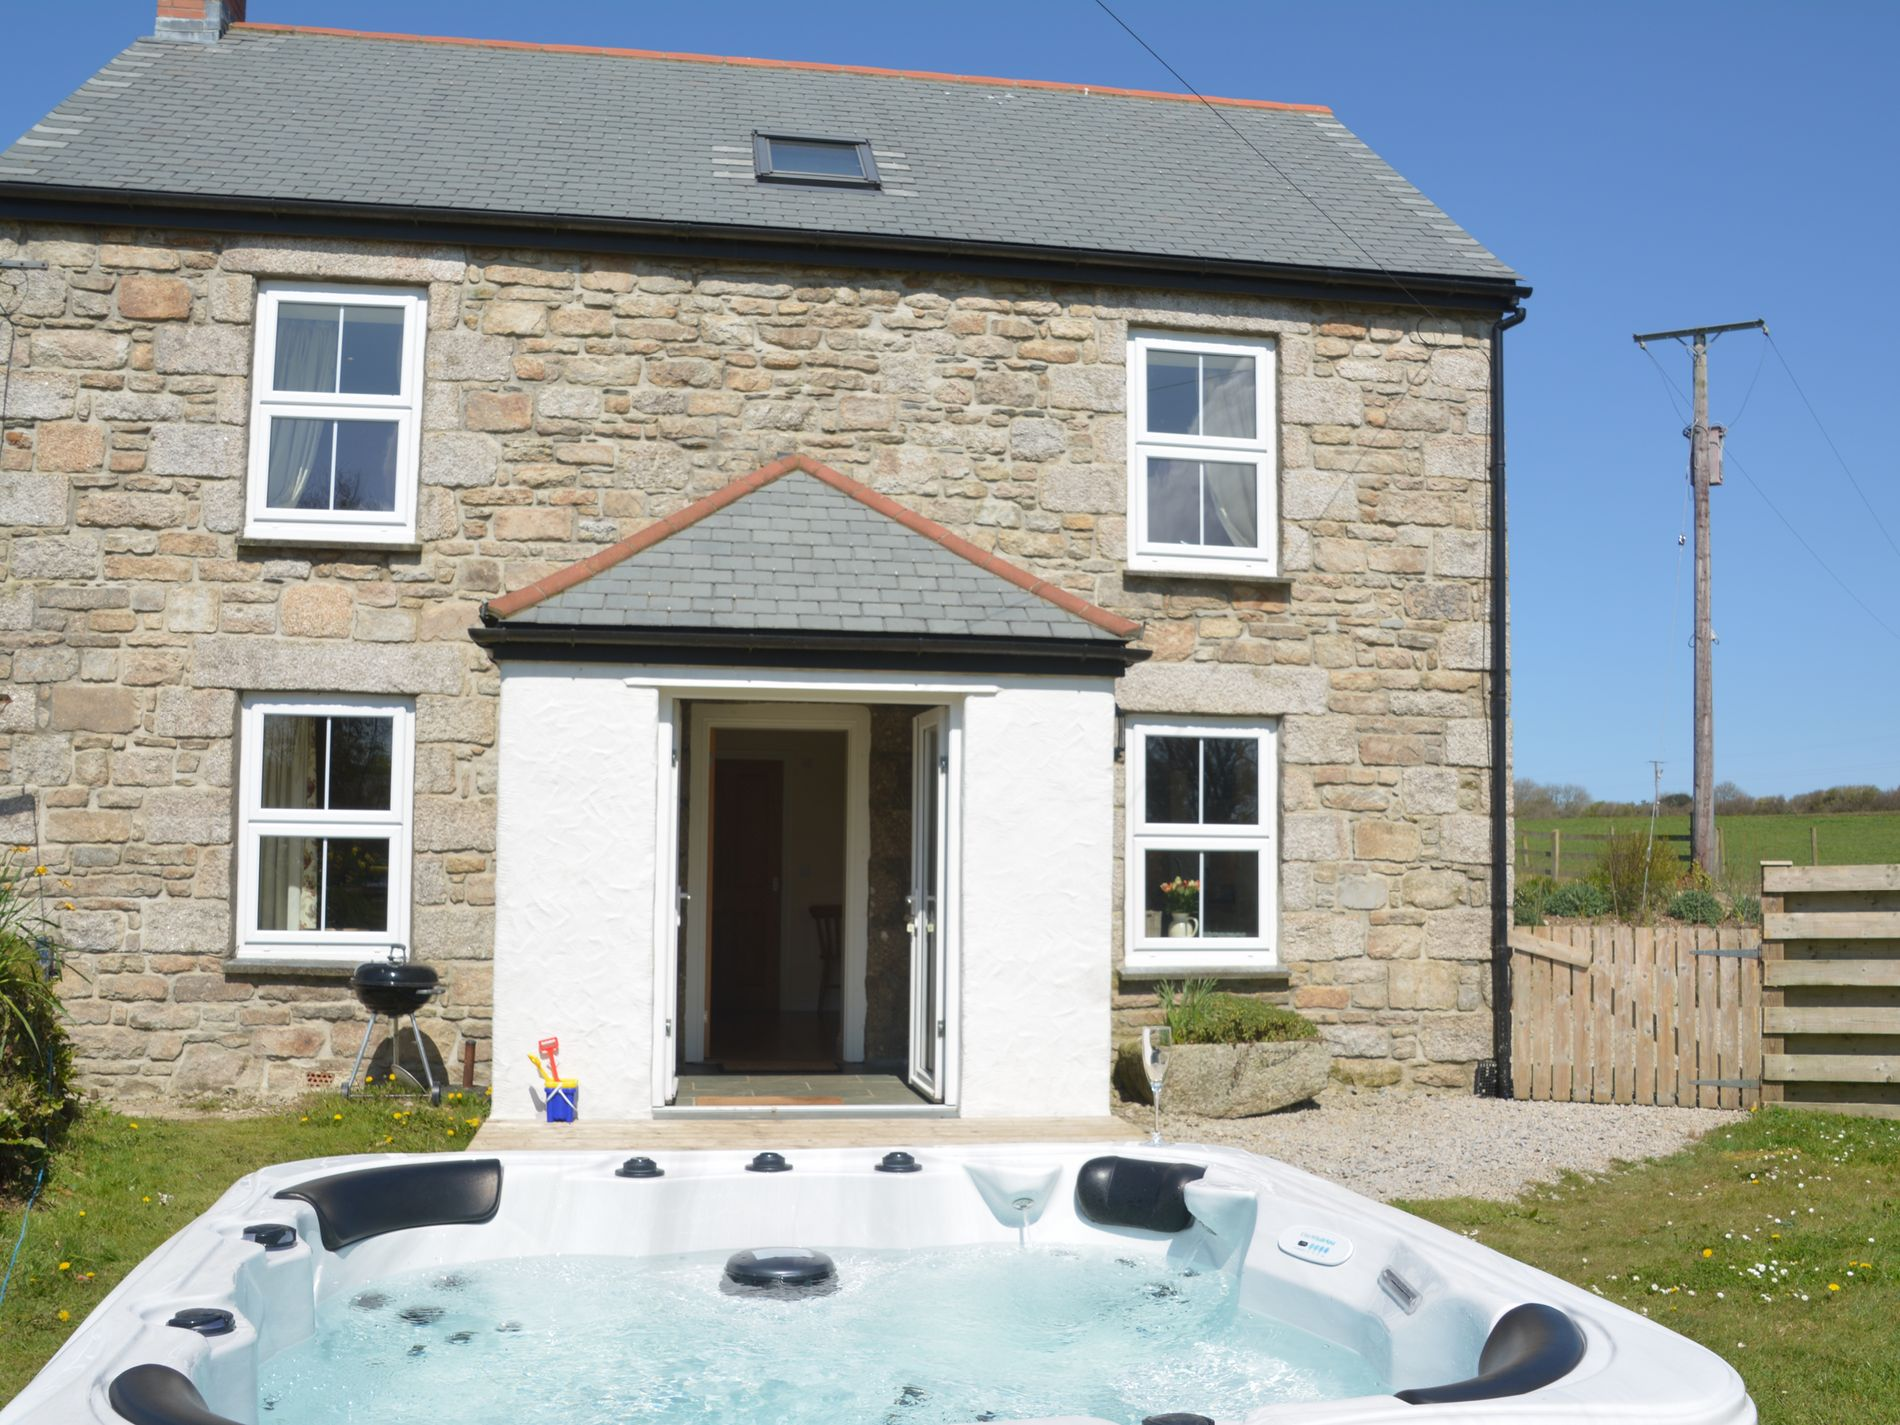 3 Bedroom Cottage in Camborne, Cornwall